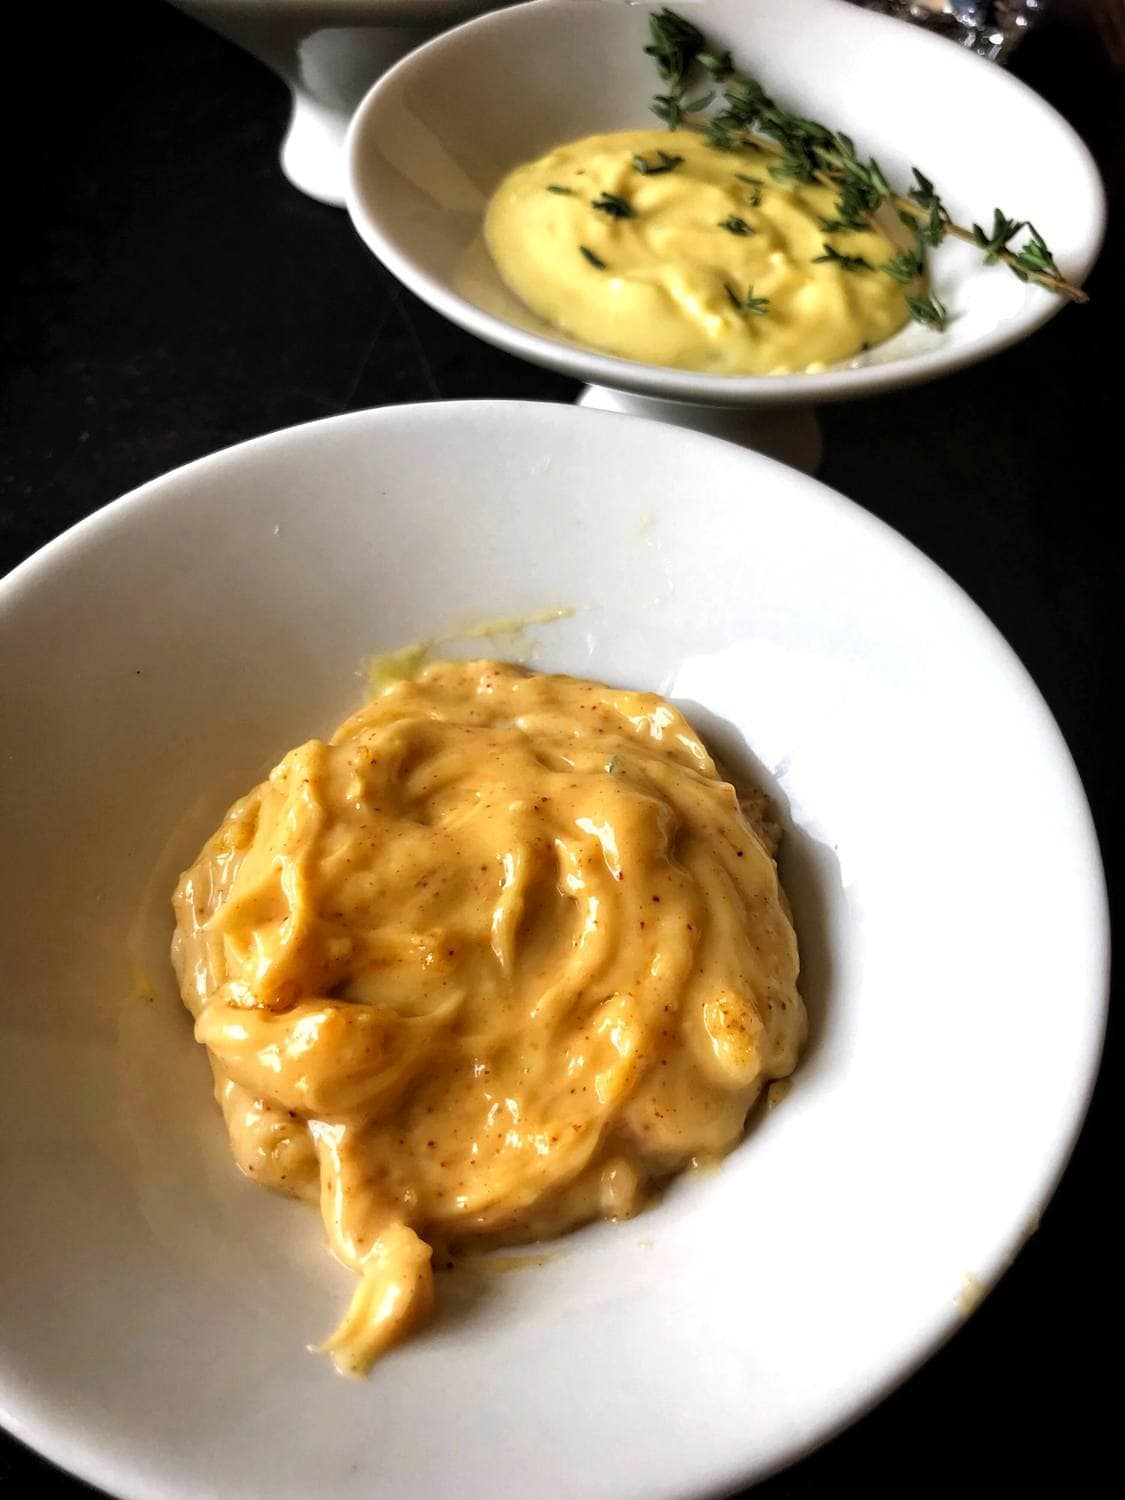 Creamy, rich, versatile aioli is easy and delicious to make from scratch! This is going to be your best friend; aioli goes with everything!